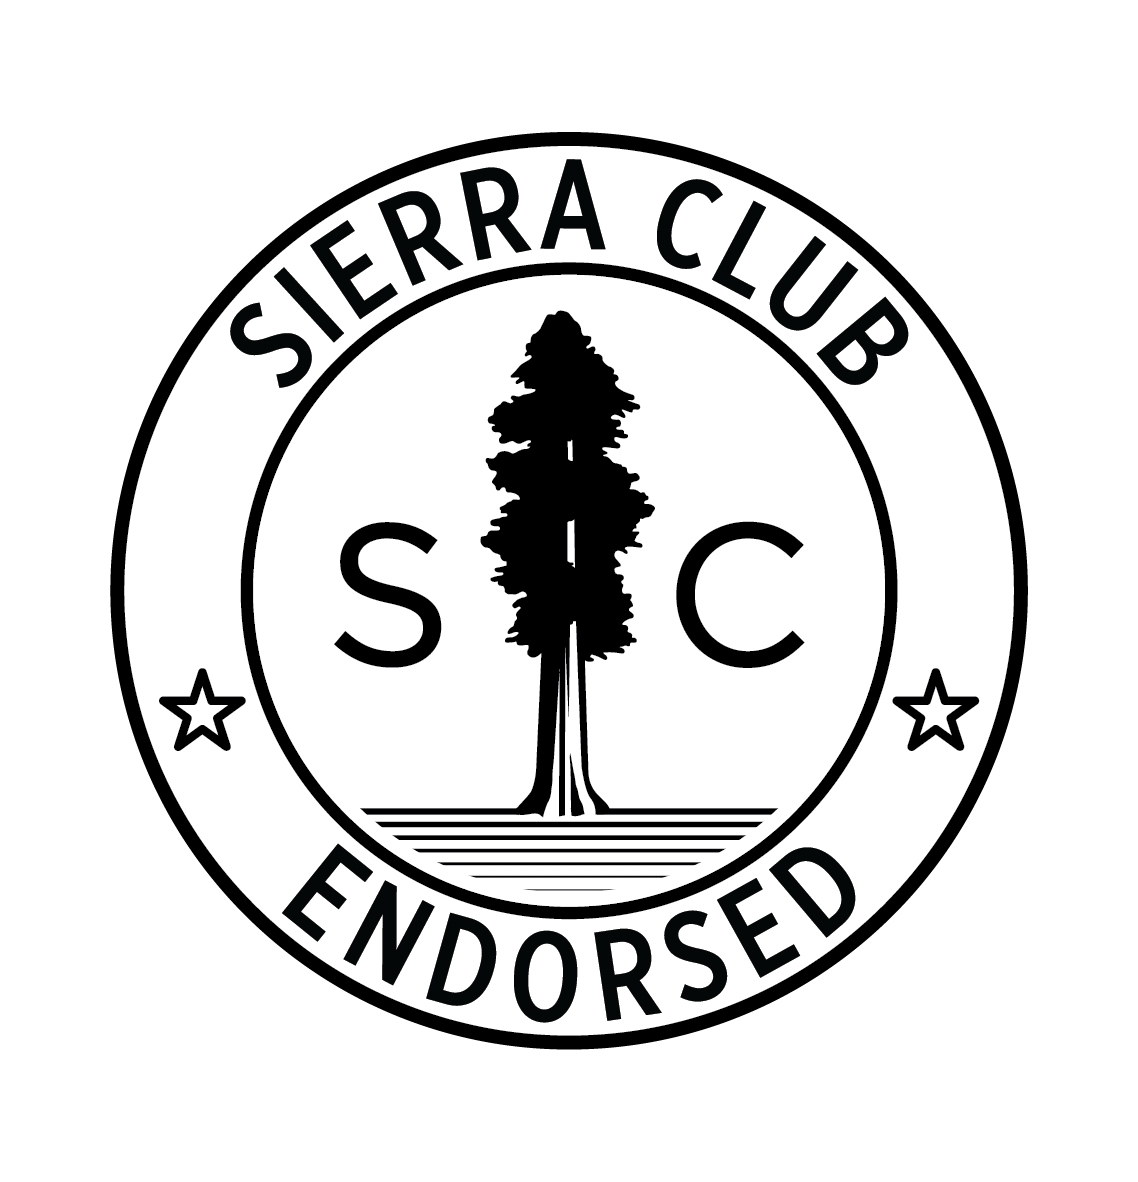 """Official Quote from Sierra Club - """"The Massachusetts Sierra Club is proud to endorse Nicola Williams for Cambridge City Council. Nicola is a committed advocate for protecting Cambridge's tree canopy, enhancing cycling infrastructure, and furthering sustainability in local food systems. We are confident that her experience with the Sustainable Business Network and commitment to environmental justice will make her an effective city councilor and an environmental champion for Cambridge residents."""""""